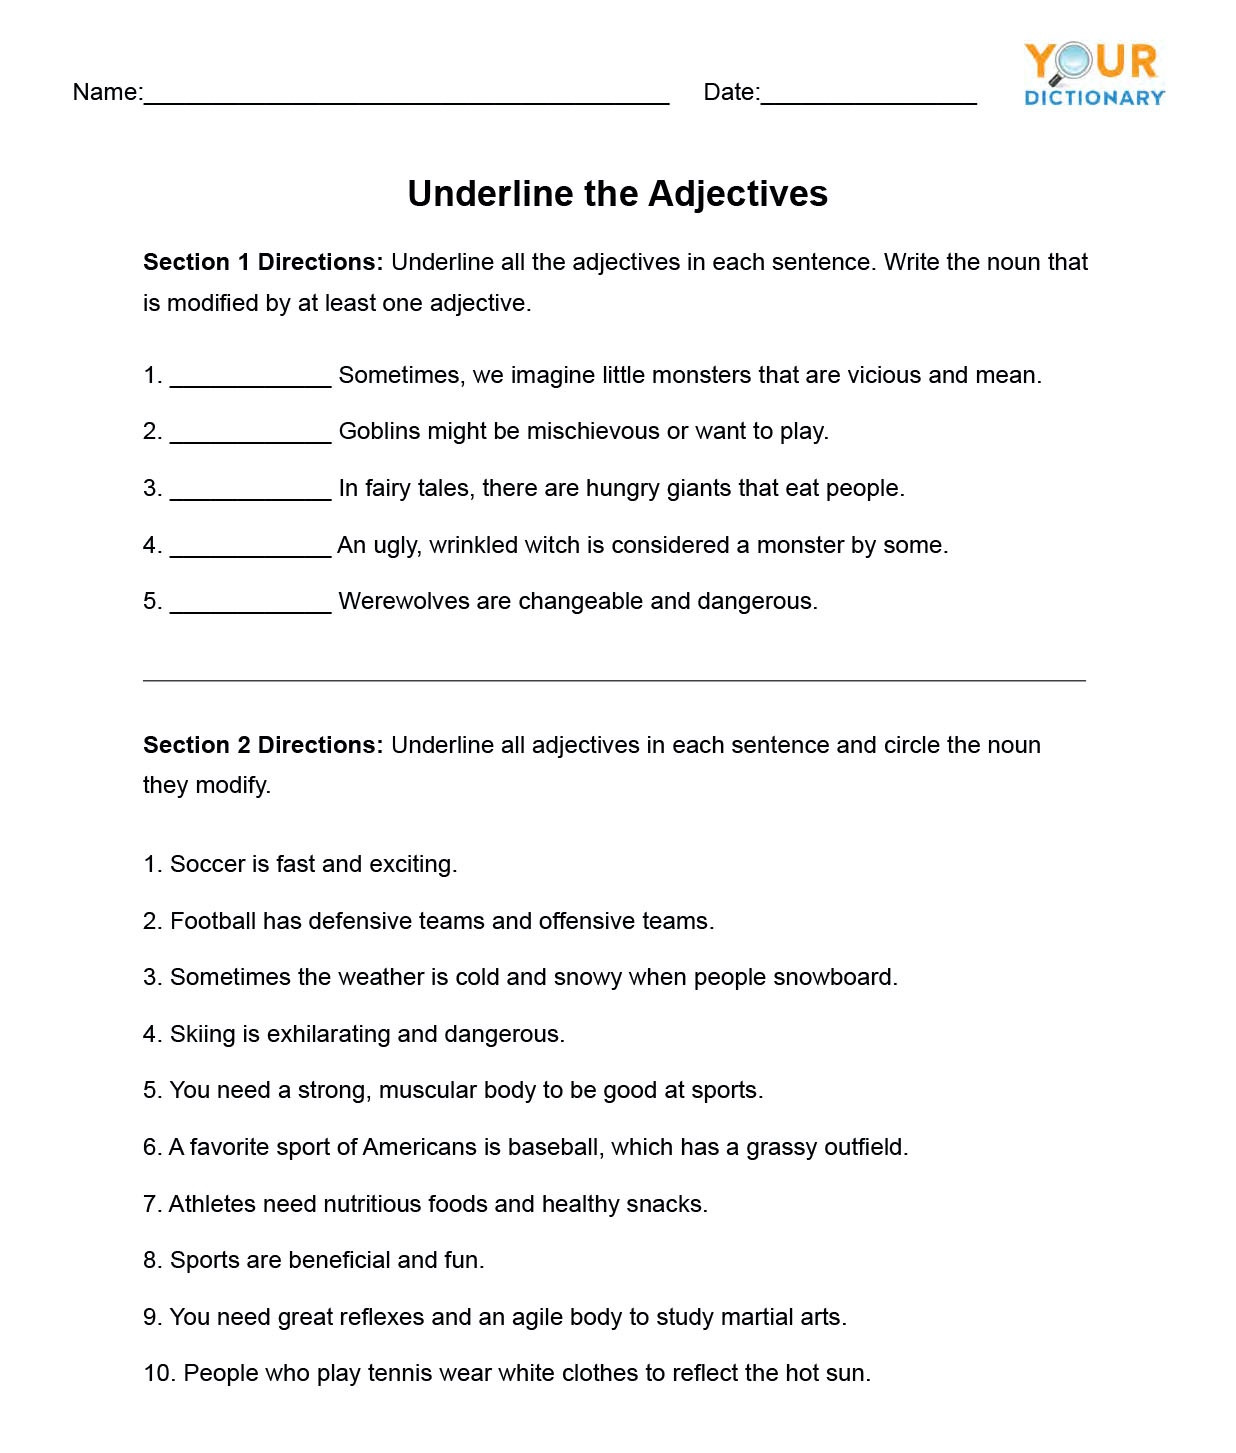 Middle School Health Worksheets Adjective Worksheets for Elementary and Middle School